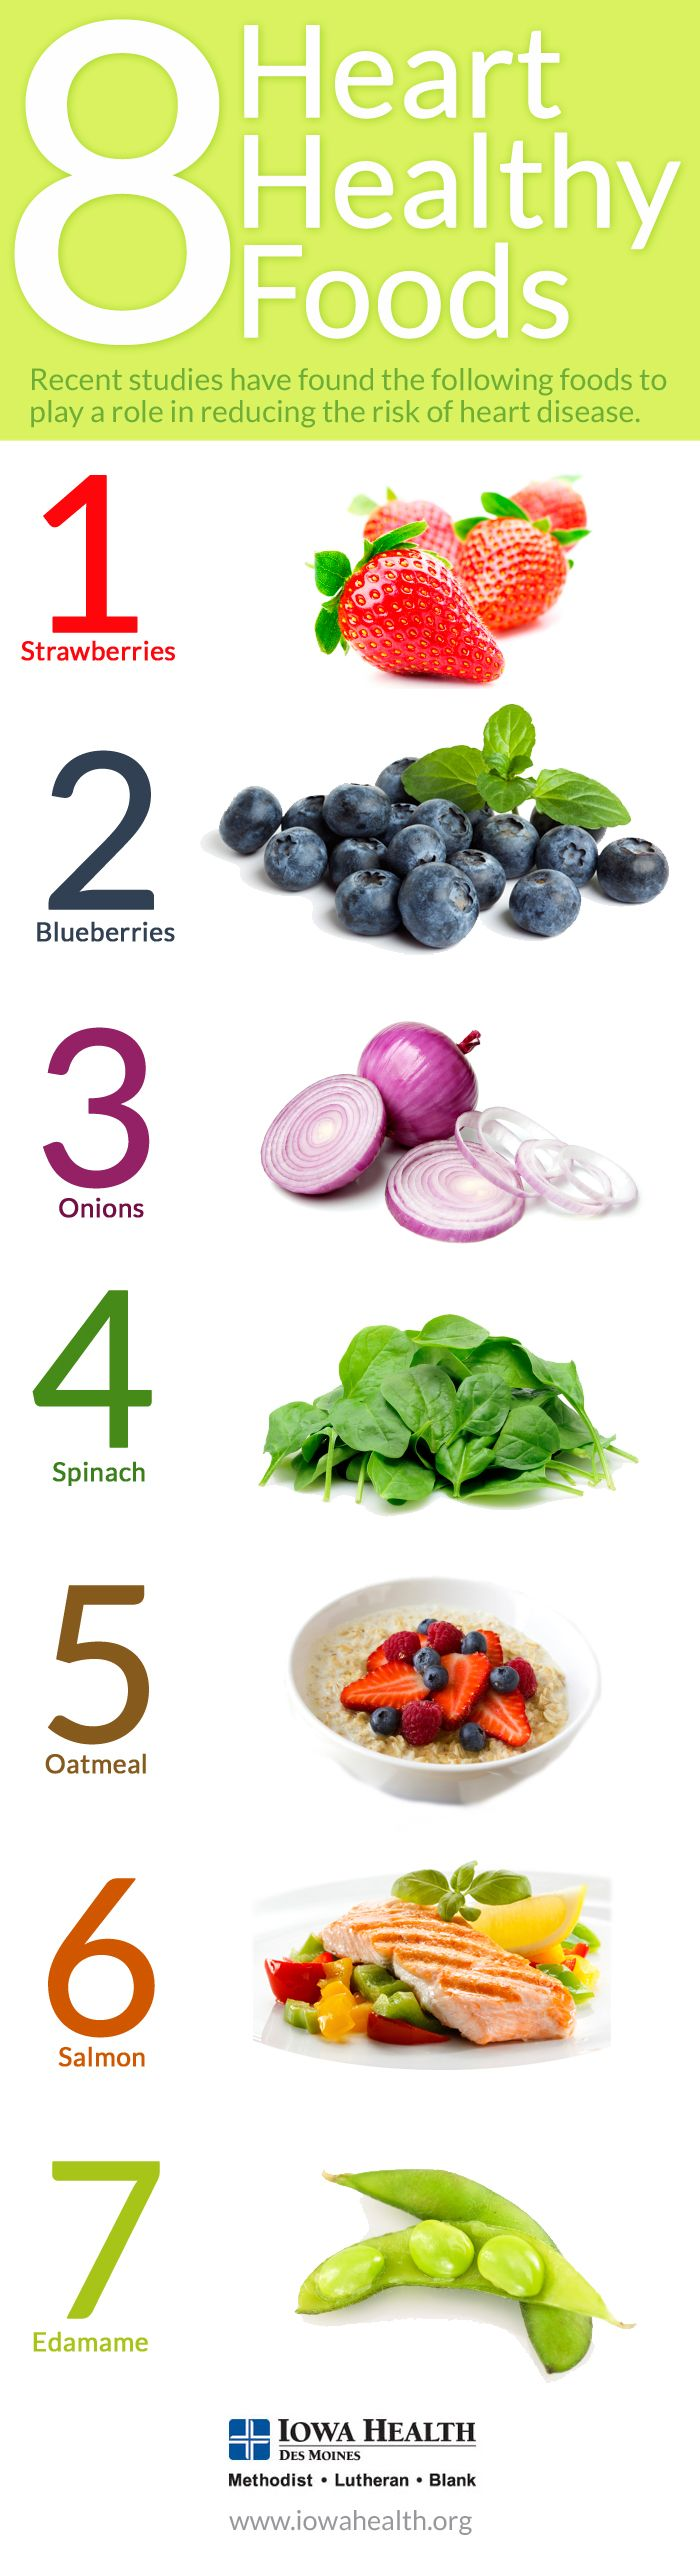 For good health what to eat - Recent Studies Have Found These Eight Heart Healthy Foods To Play A Role In Reducing The